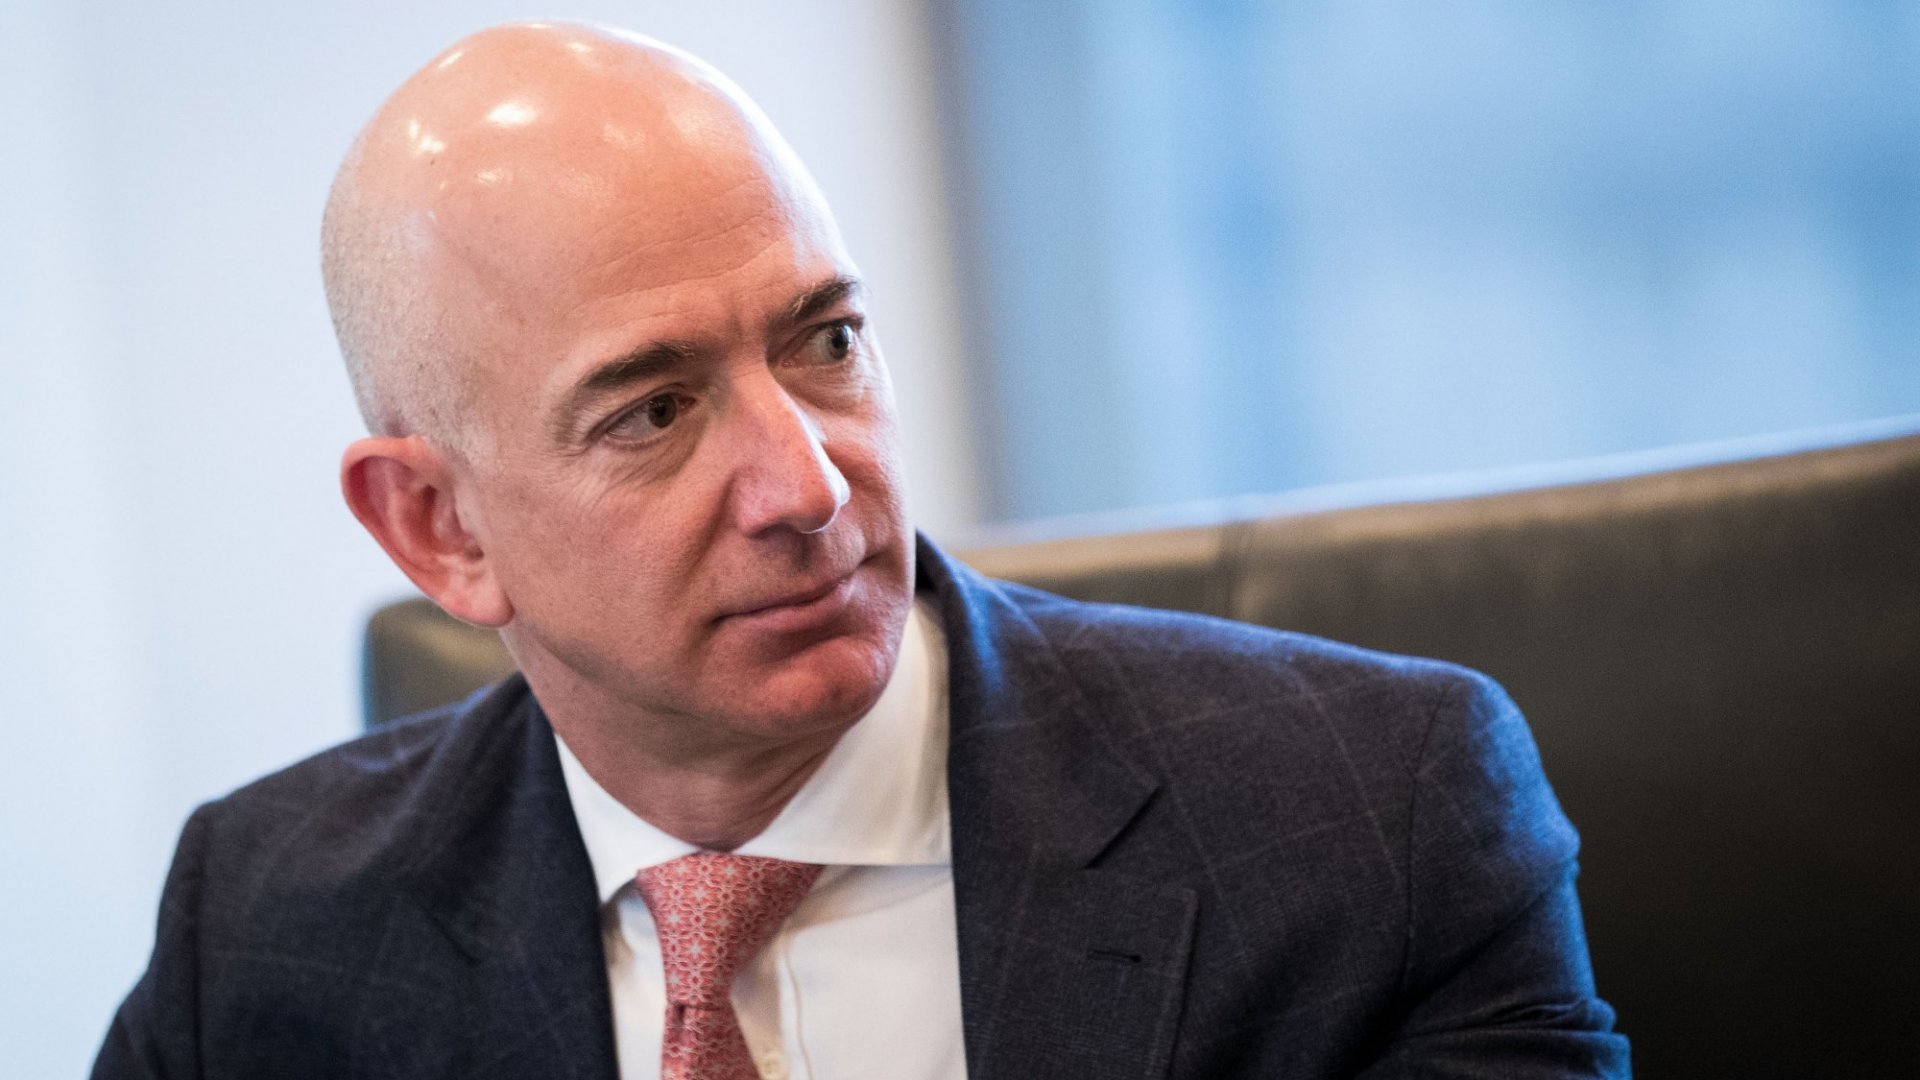 5 Takeaways From Amazon's Purchase of Whole Foods